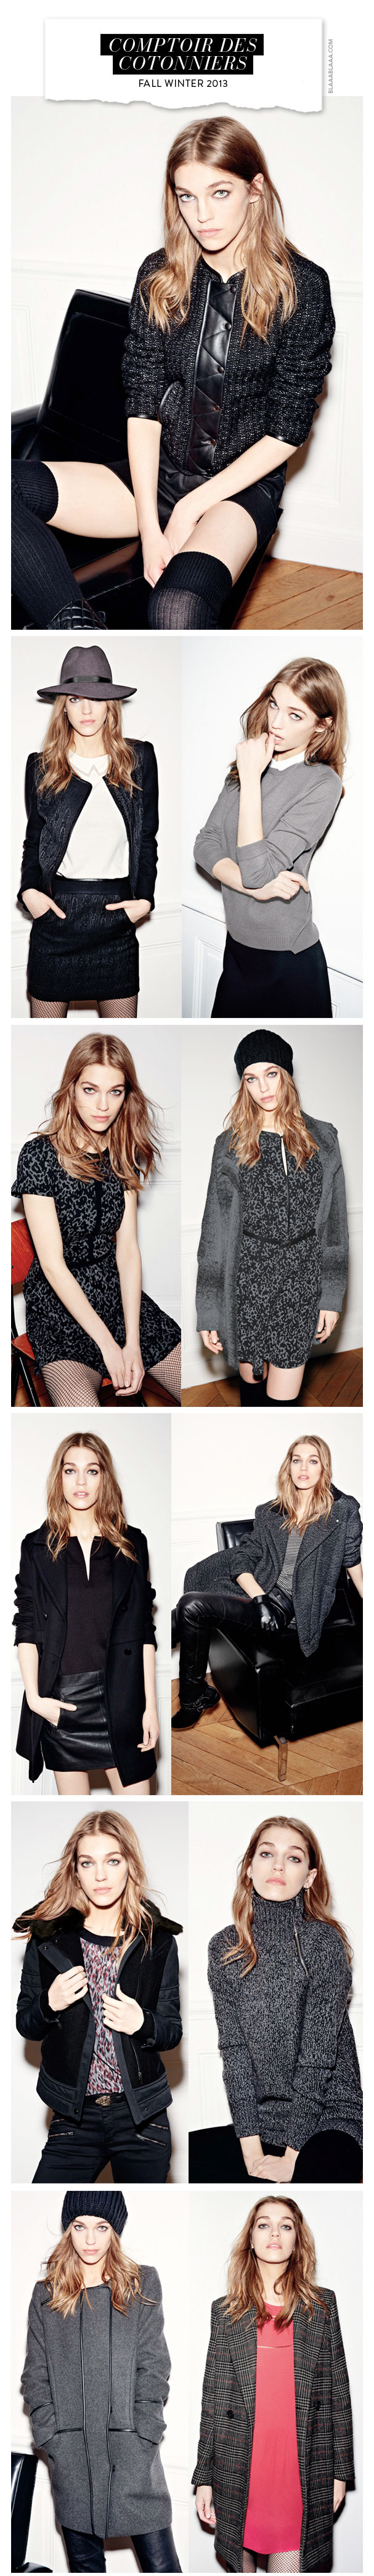 Comptoir des Cotonniers Fall Winter 2013